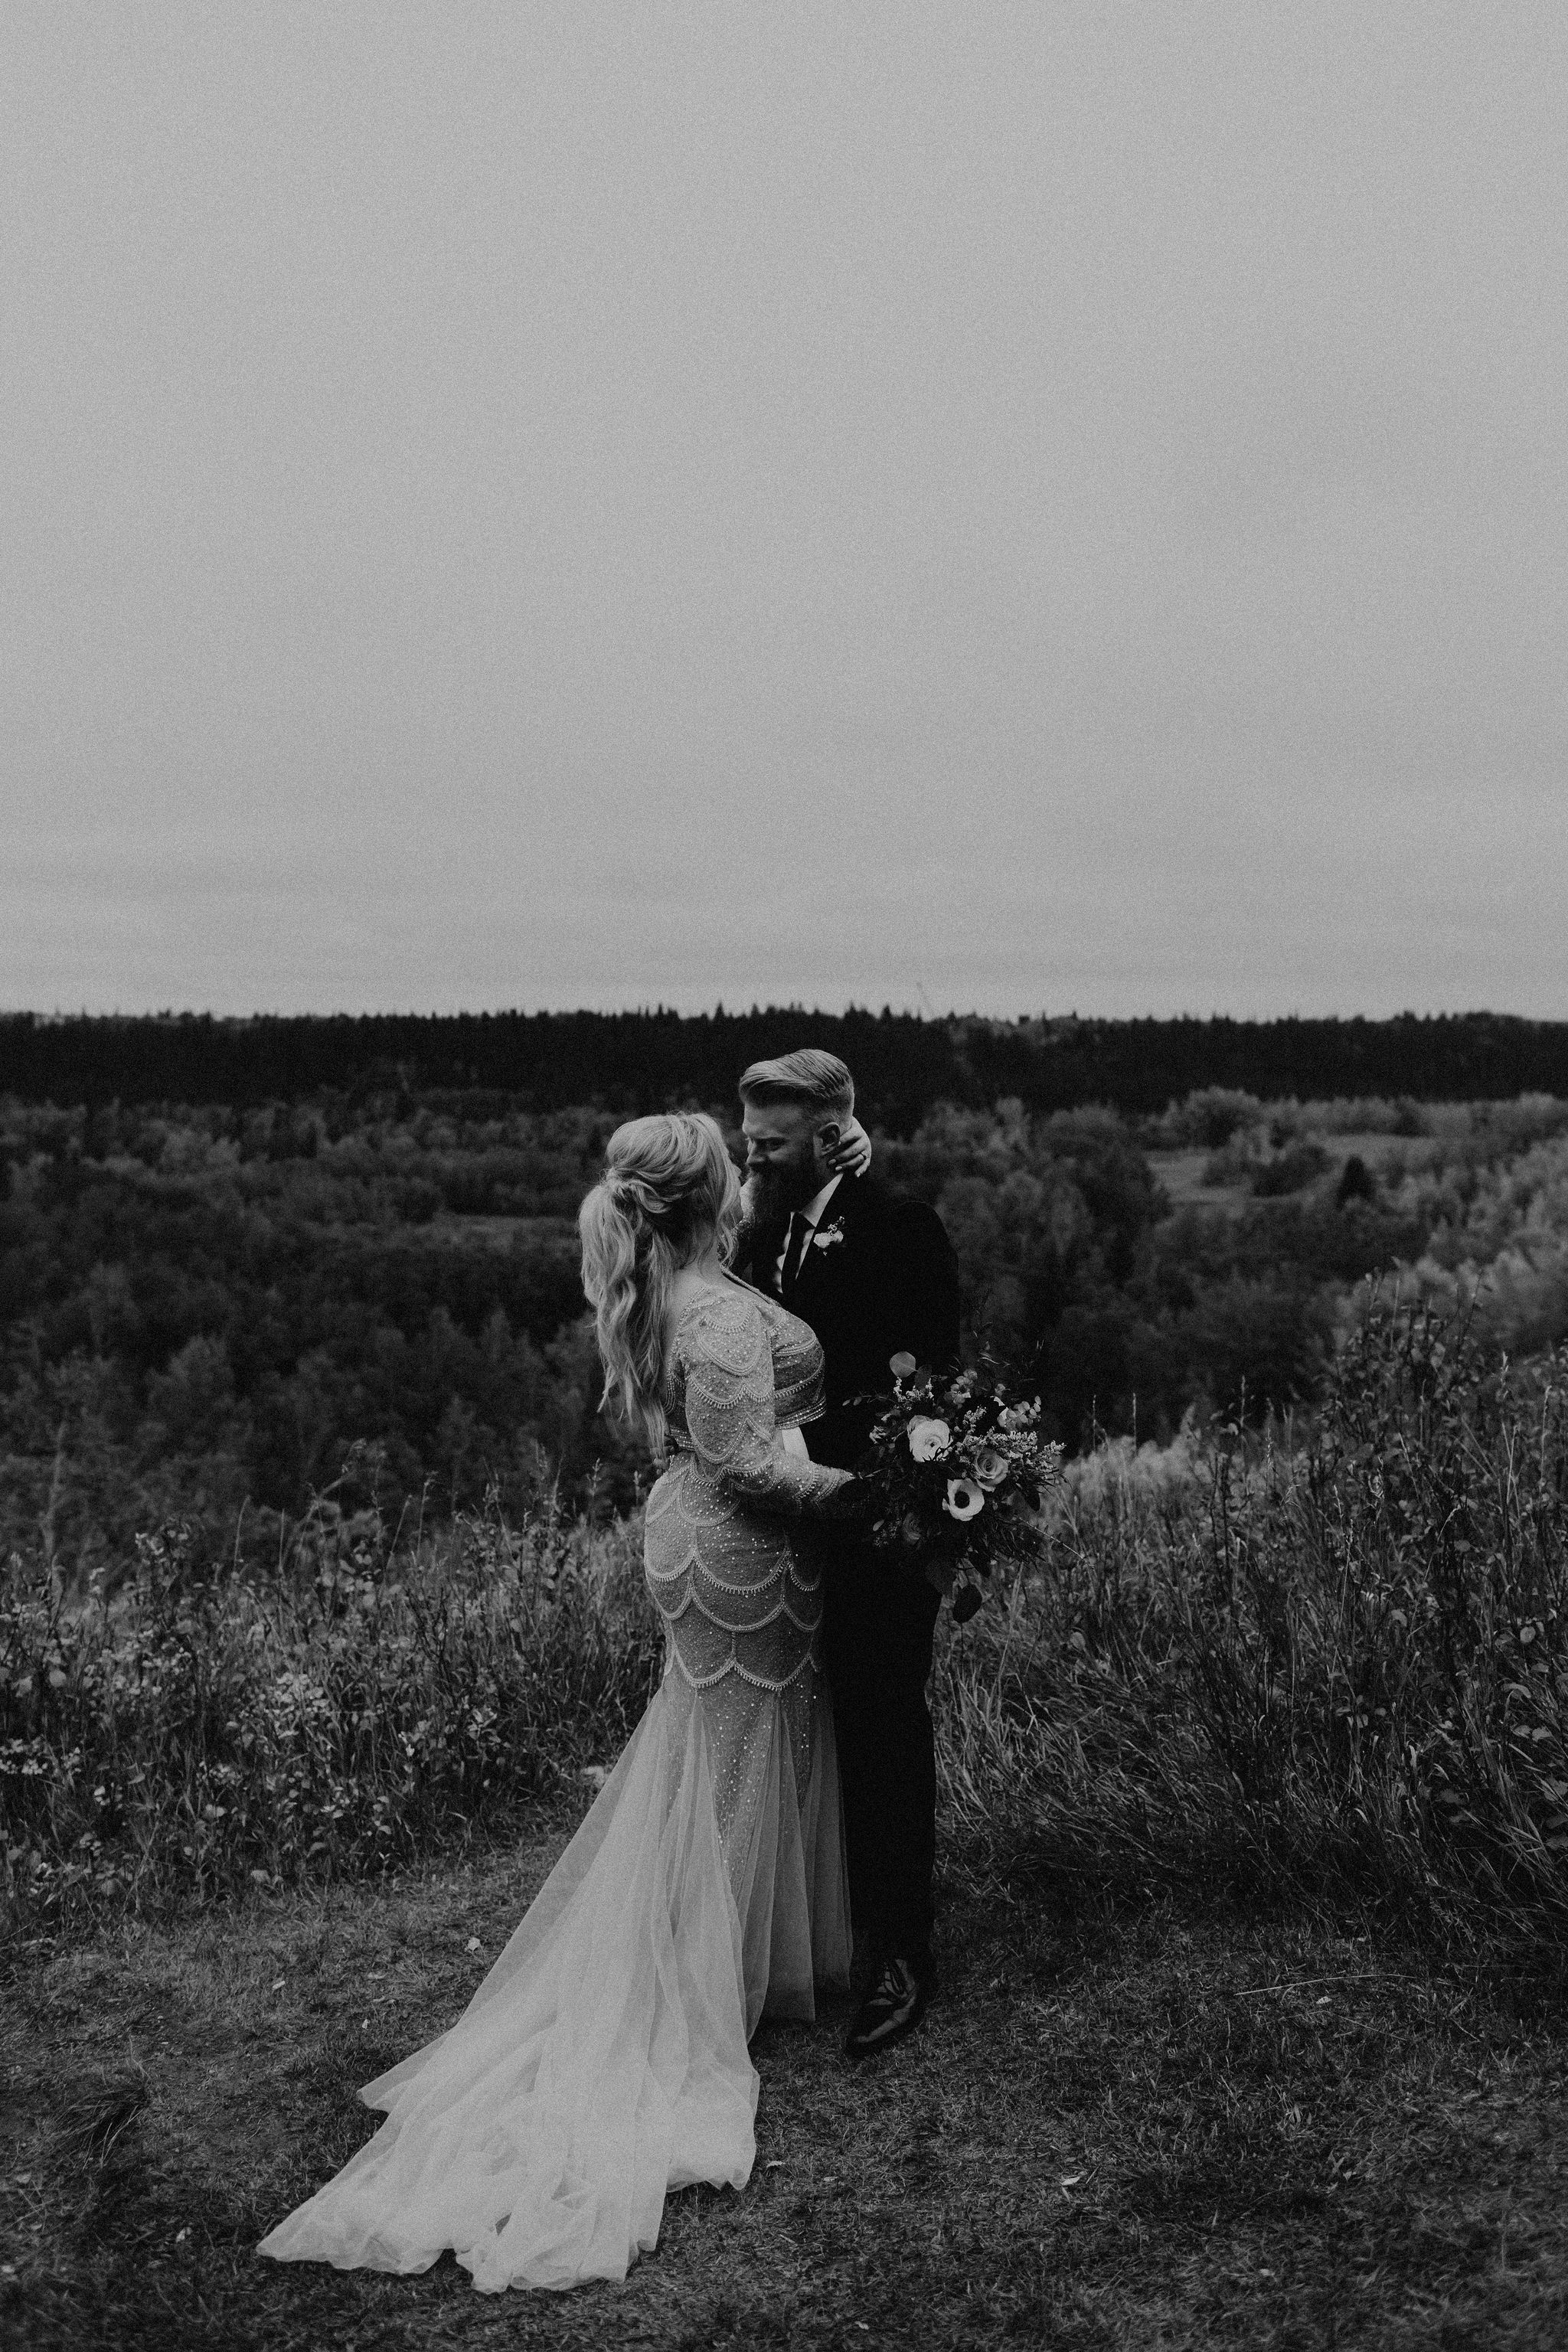 CA_Wedding_Portraits-117.jpg